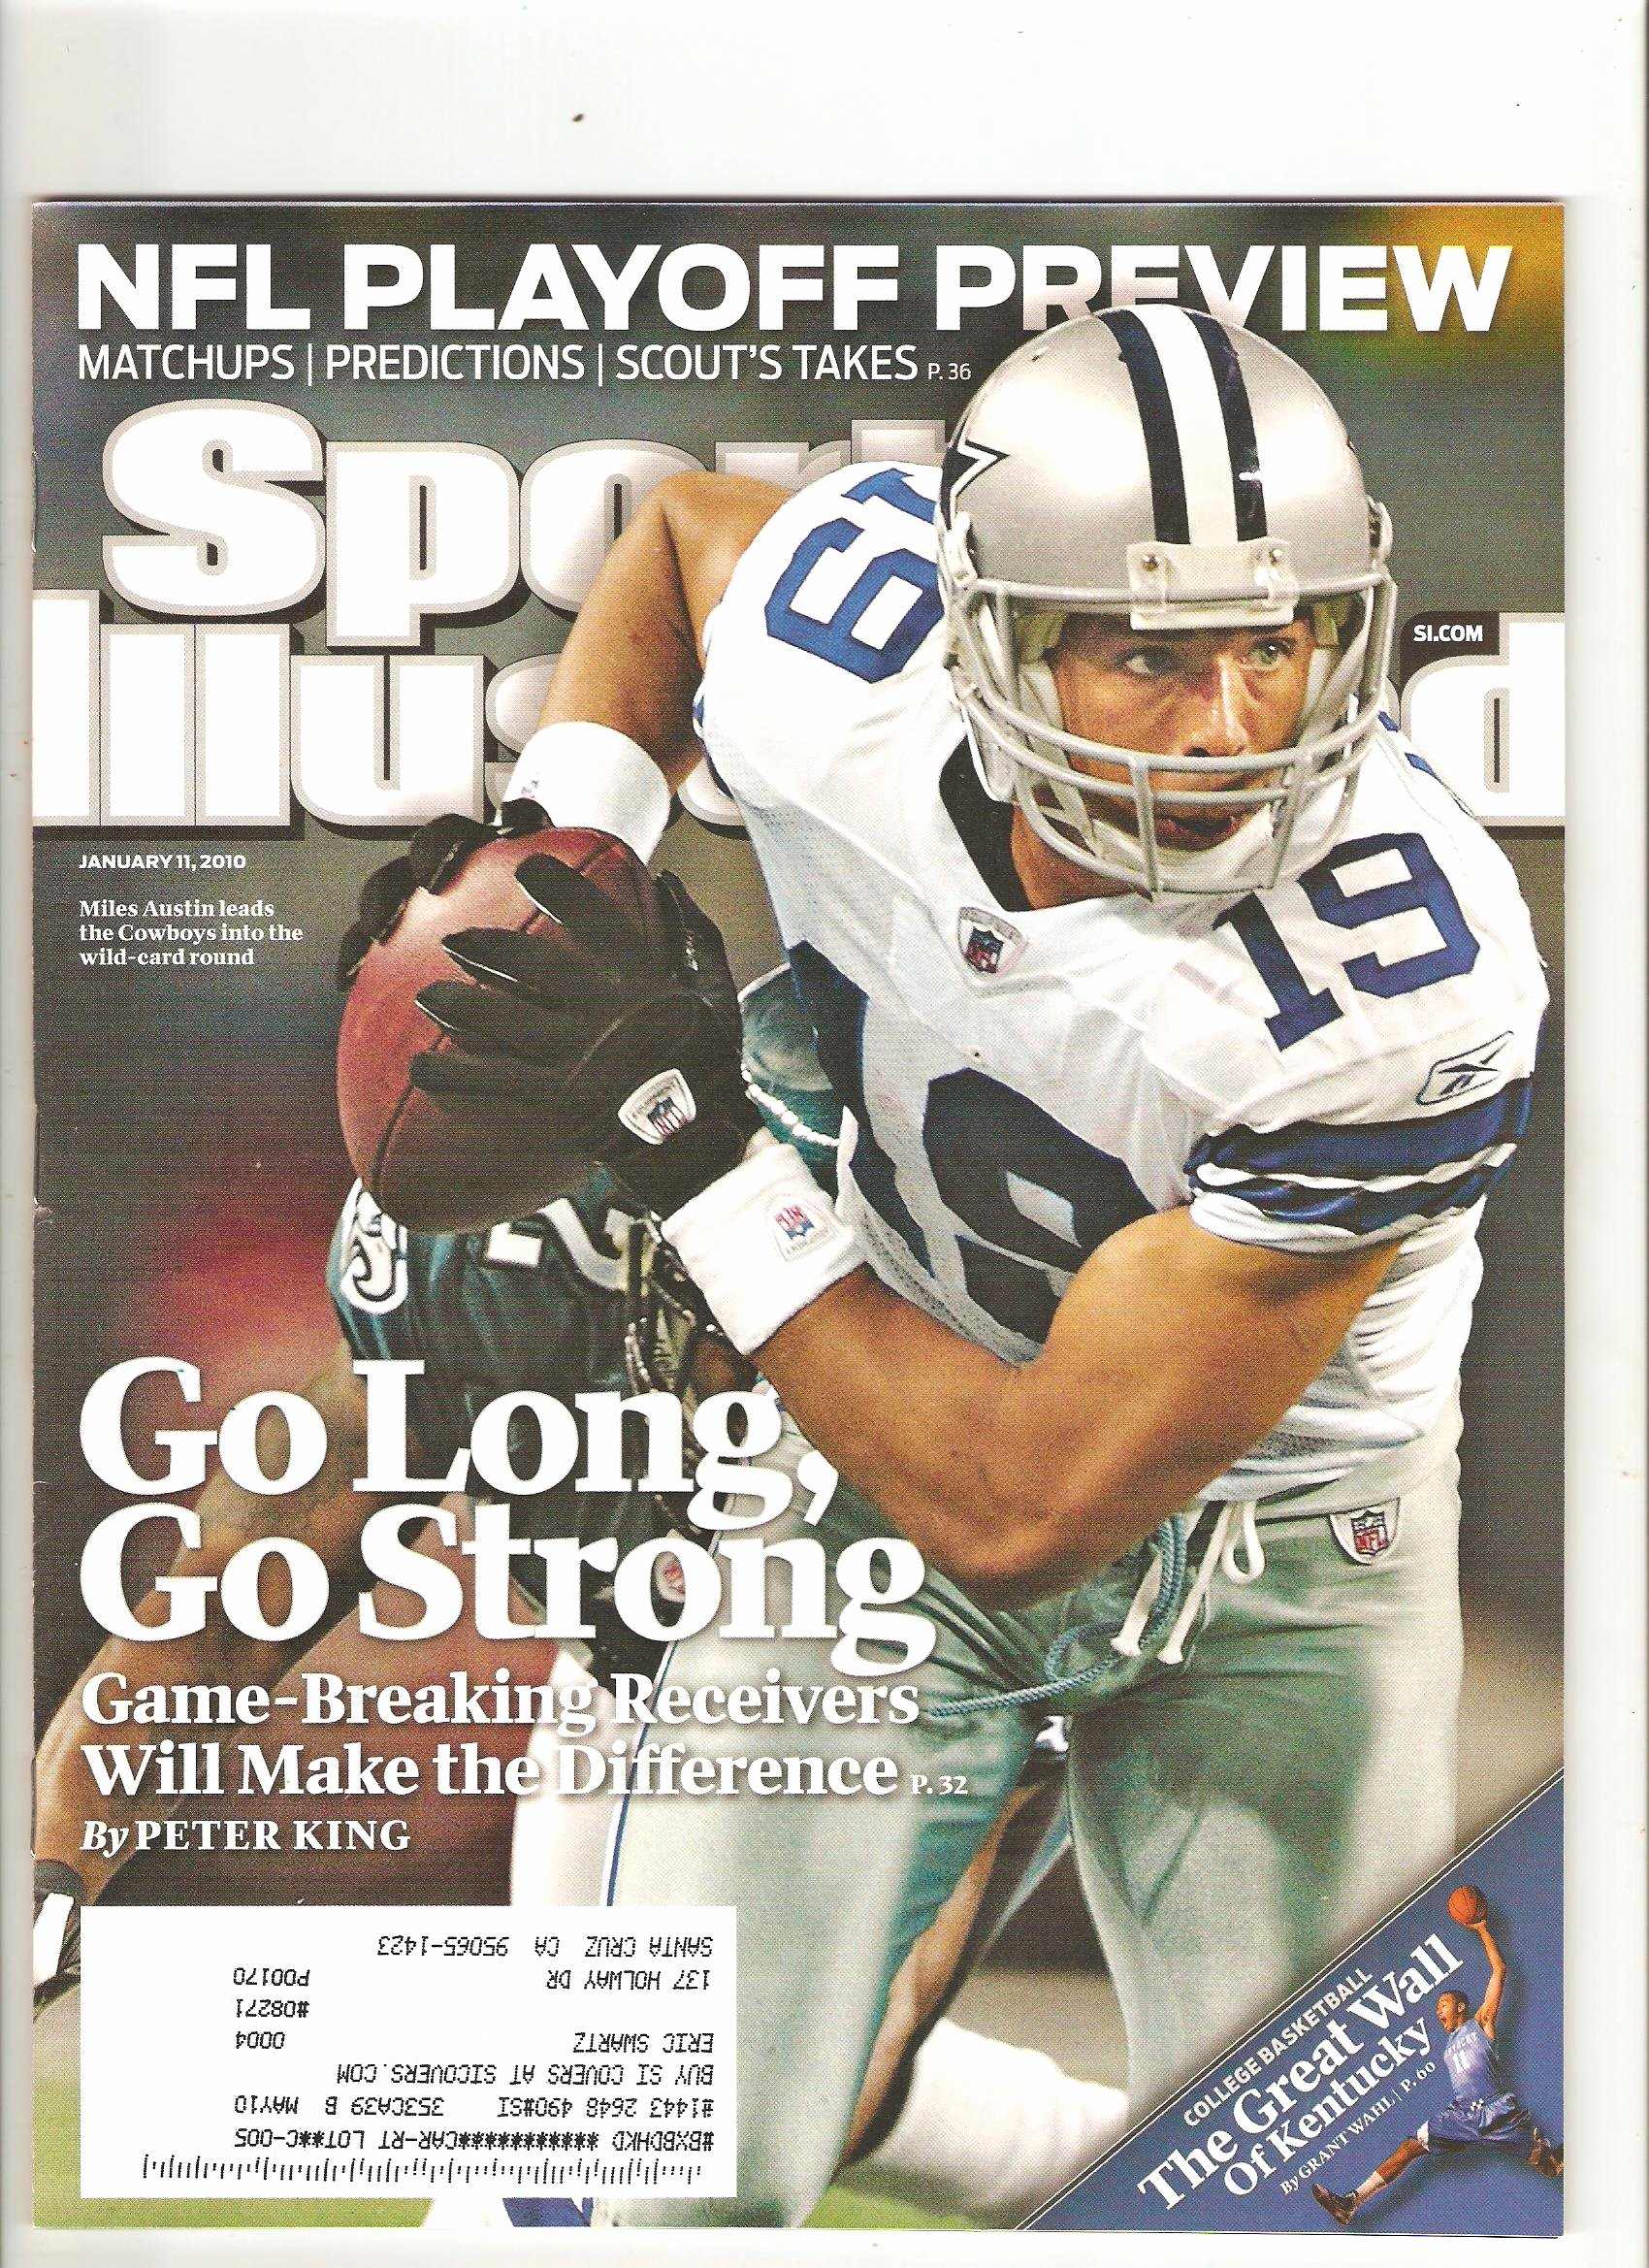 Blank Sports Illustrated Cover Inspirational Sports Magazines